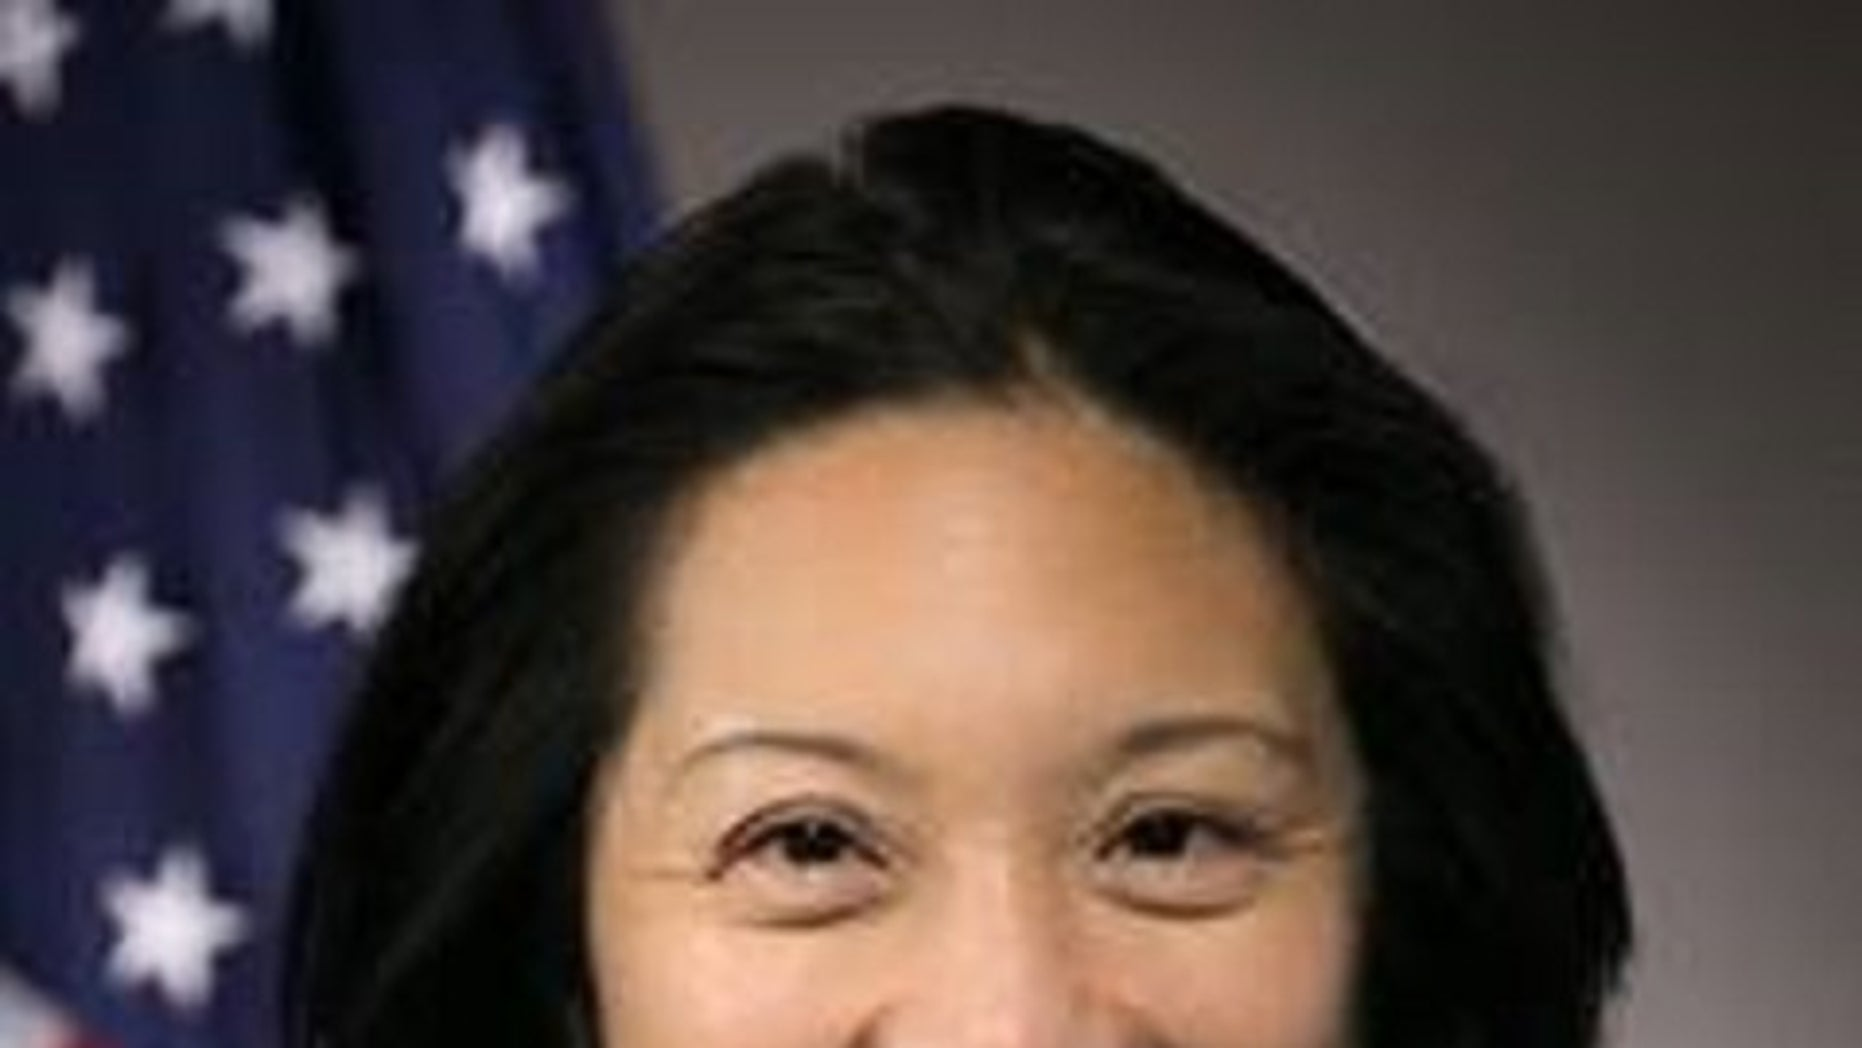 Jessie Liu is currently the U.S. attorney for the District of Columbia.